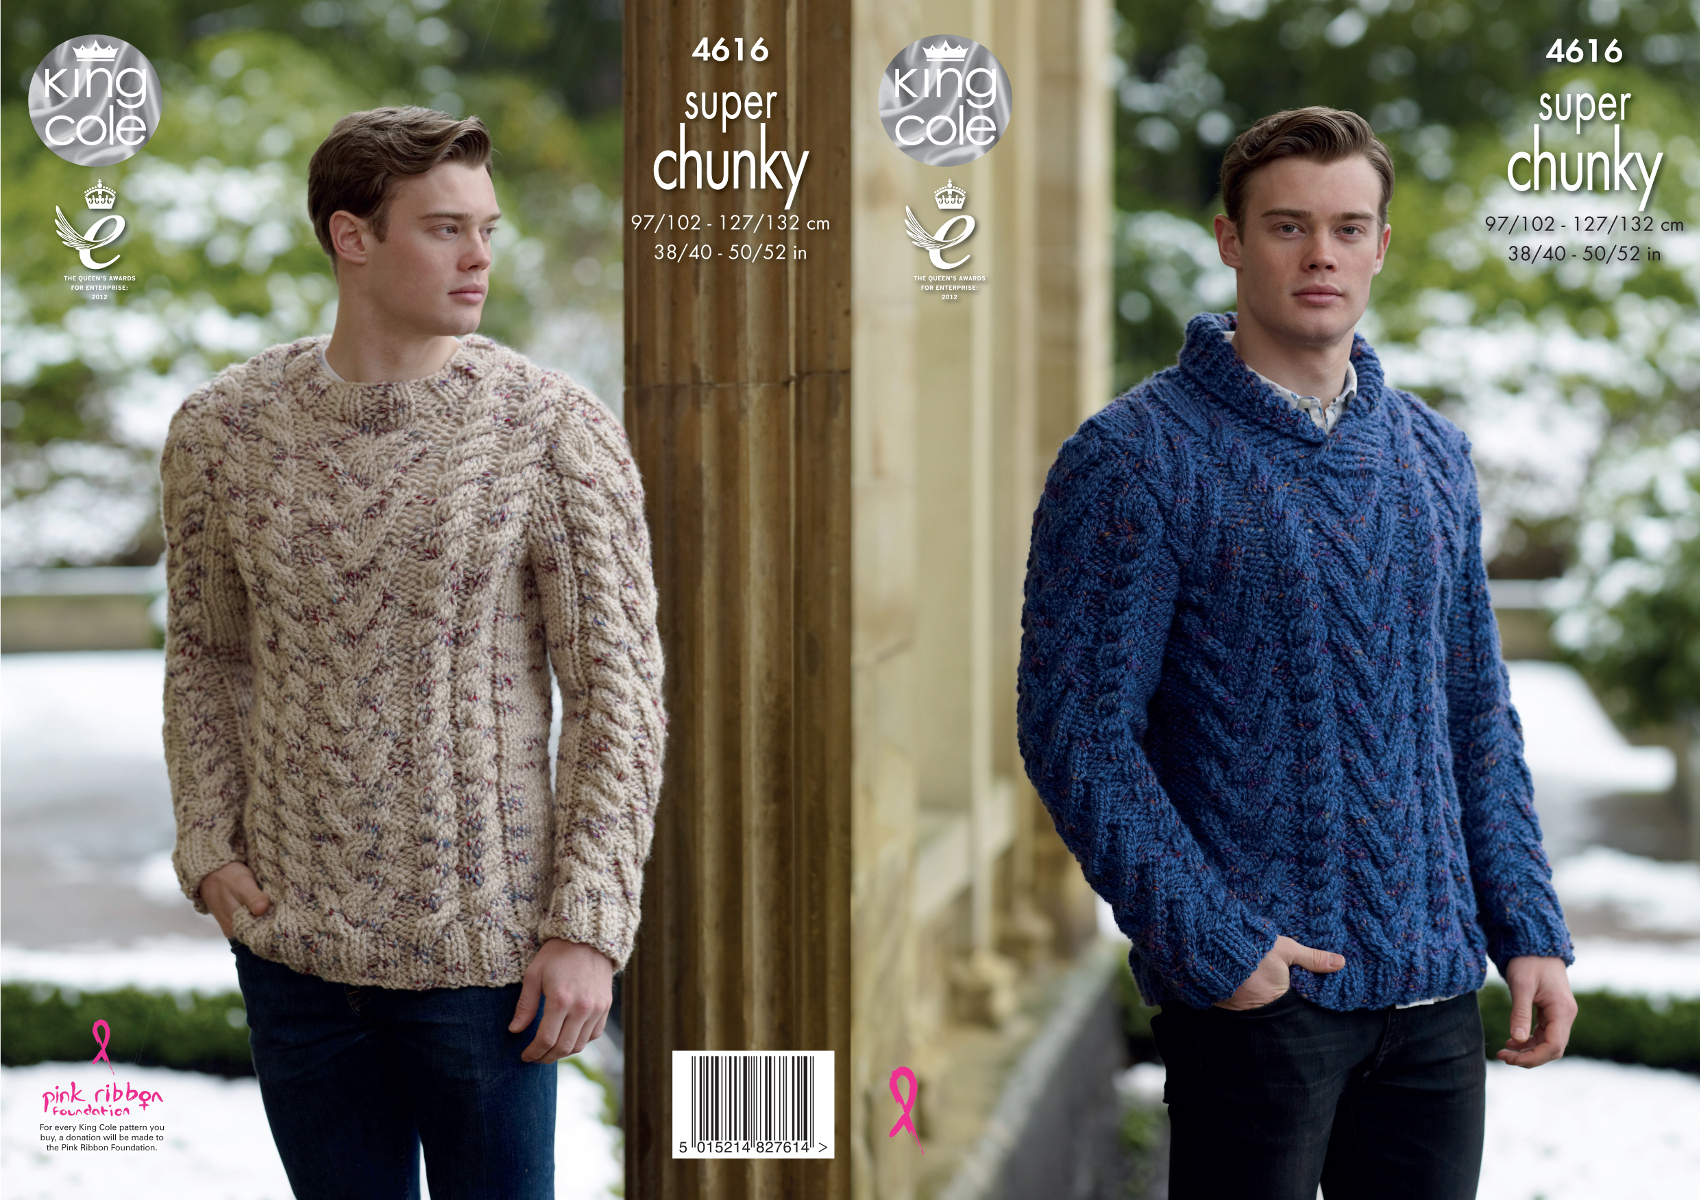 Mens Knit Patterns Details About King Cole Mens Super Chunky Knitting Pattern Round Neck Or Collar Sweater 4616